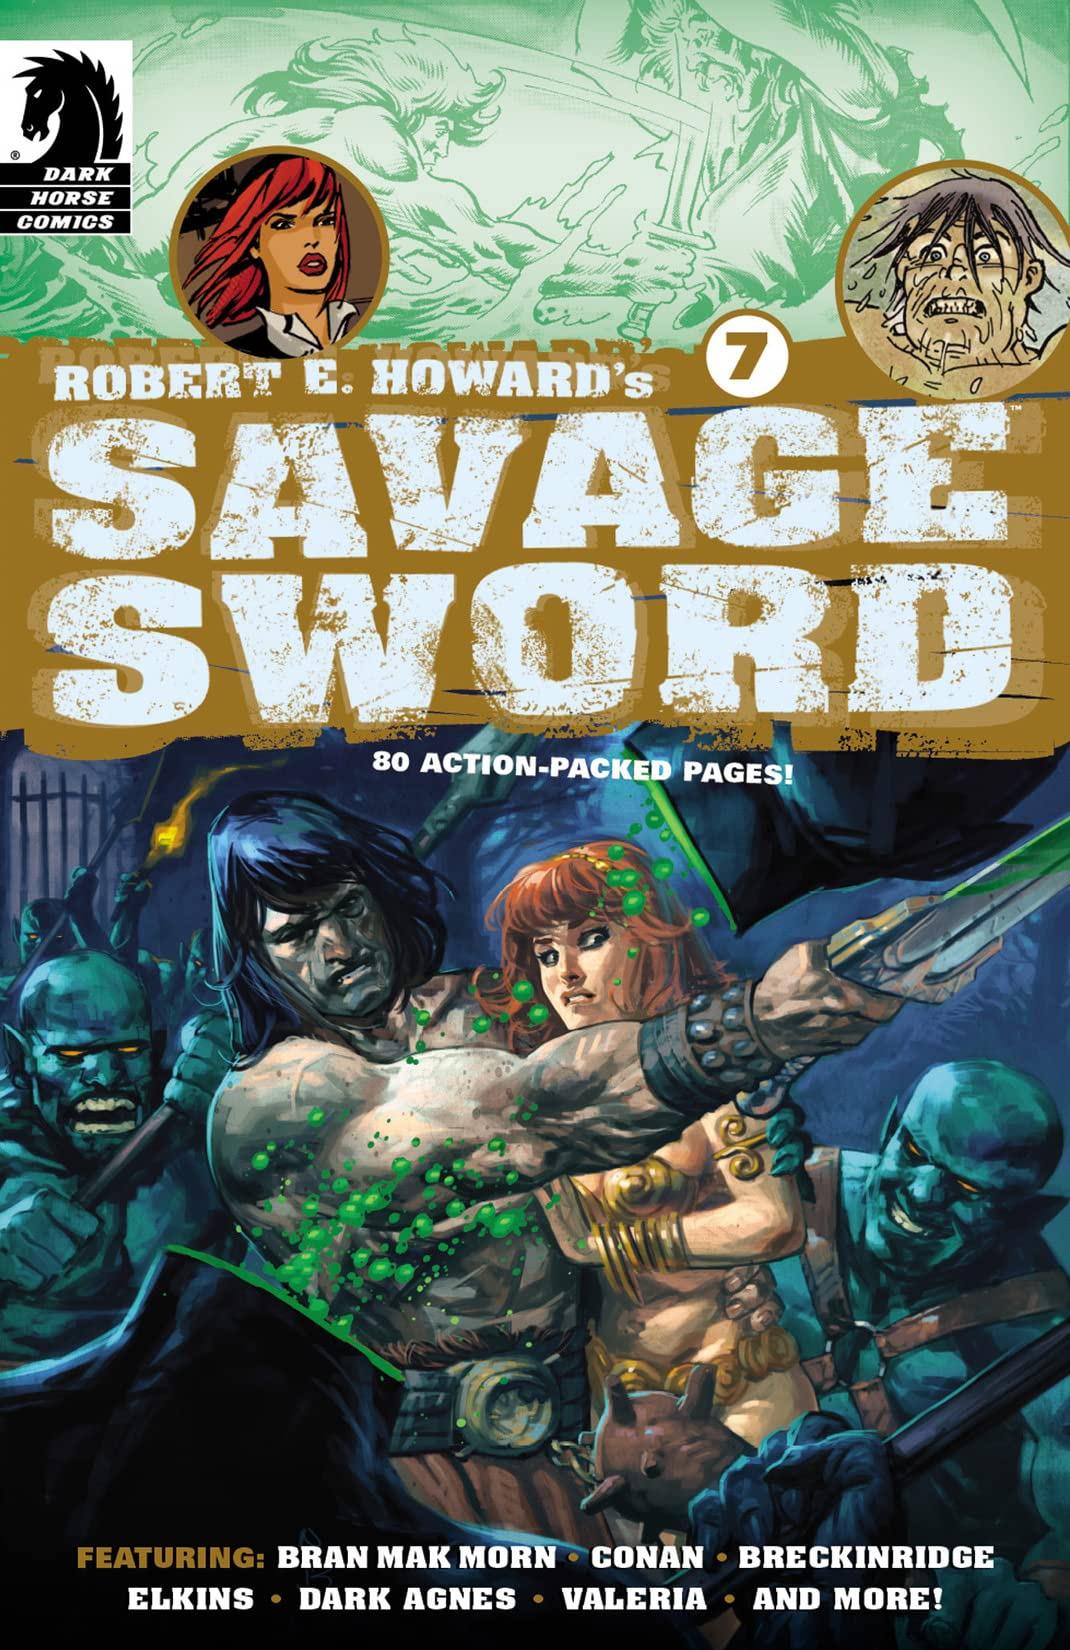 Robert E. Howard's Savage Sword #7